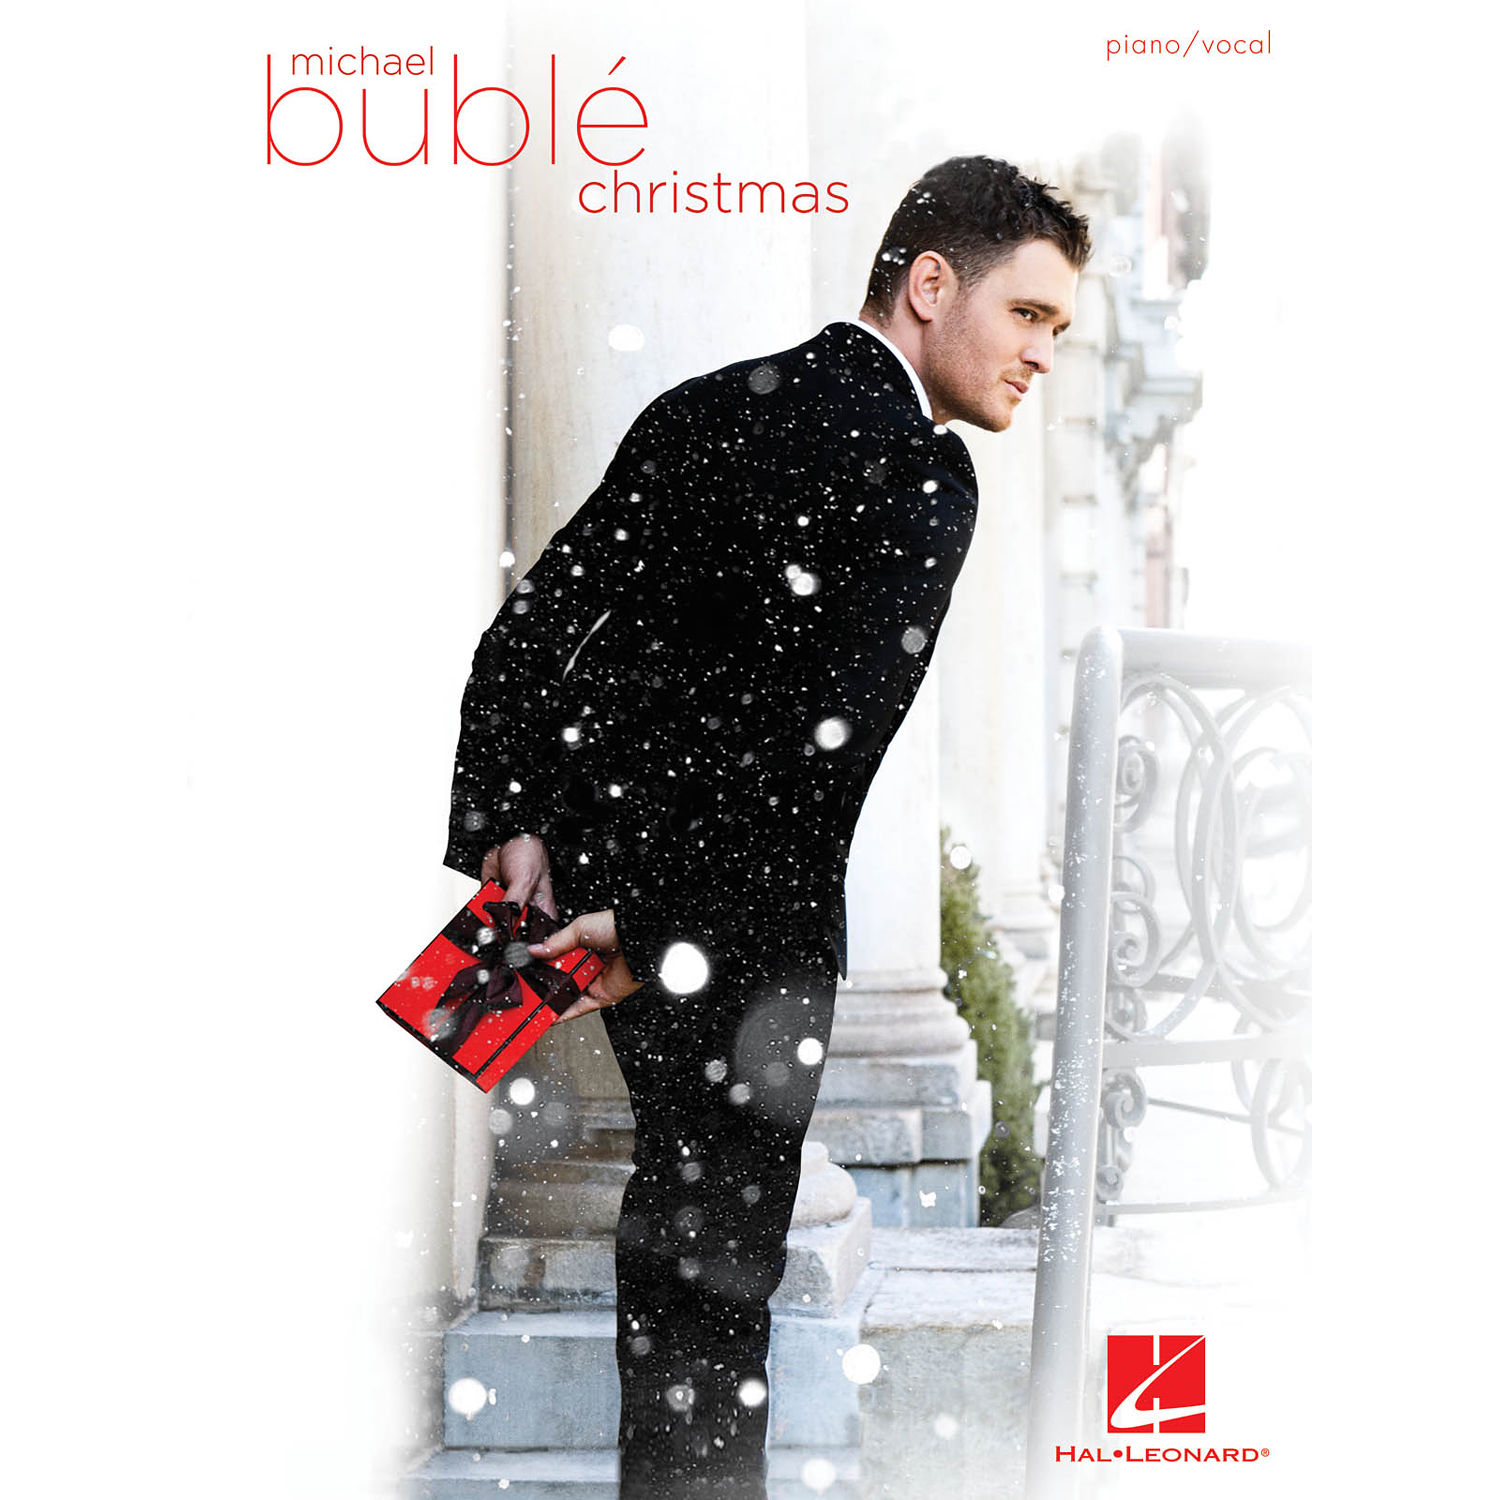 Hal Leonard Songbook: Michael Buble Christmas - 307364 B&H Photo